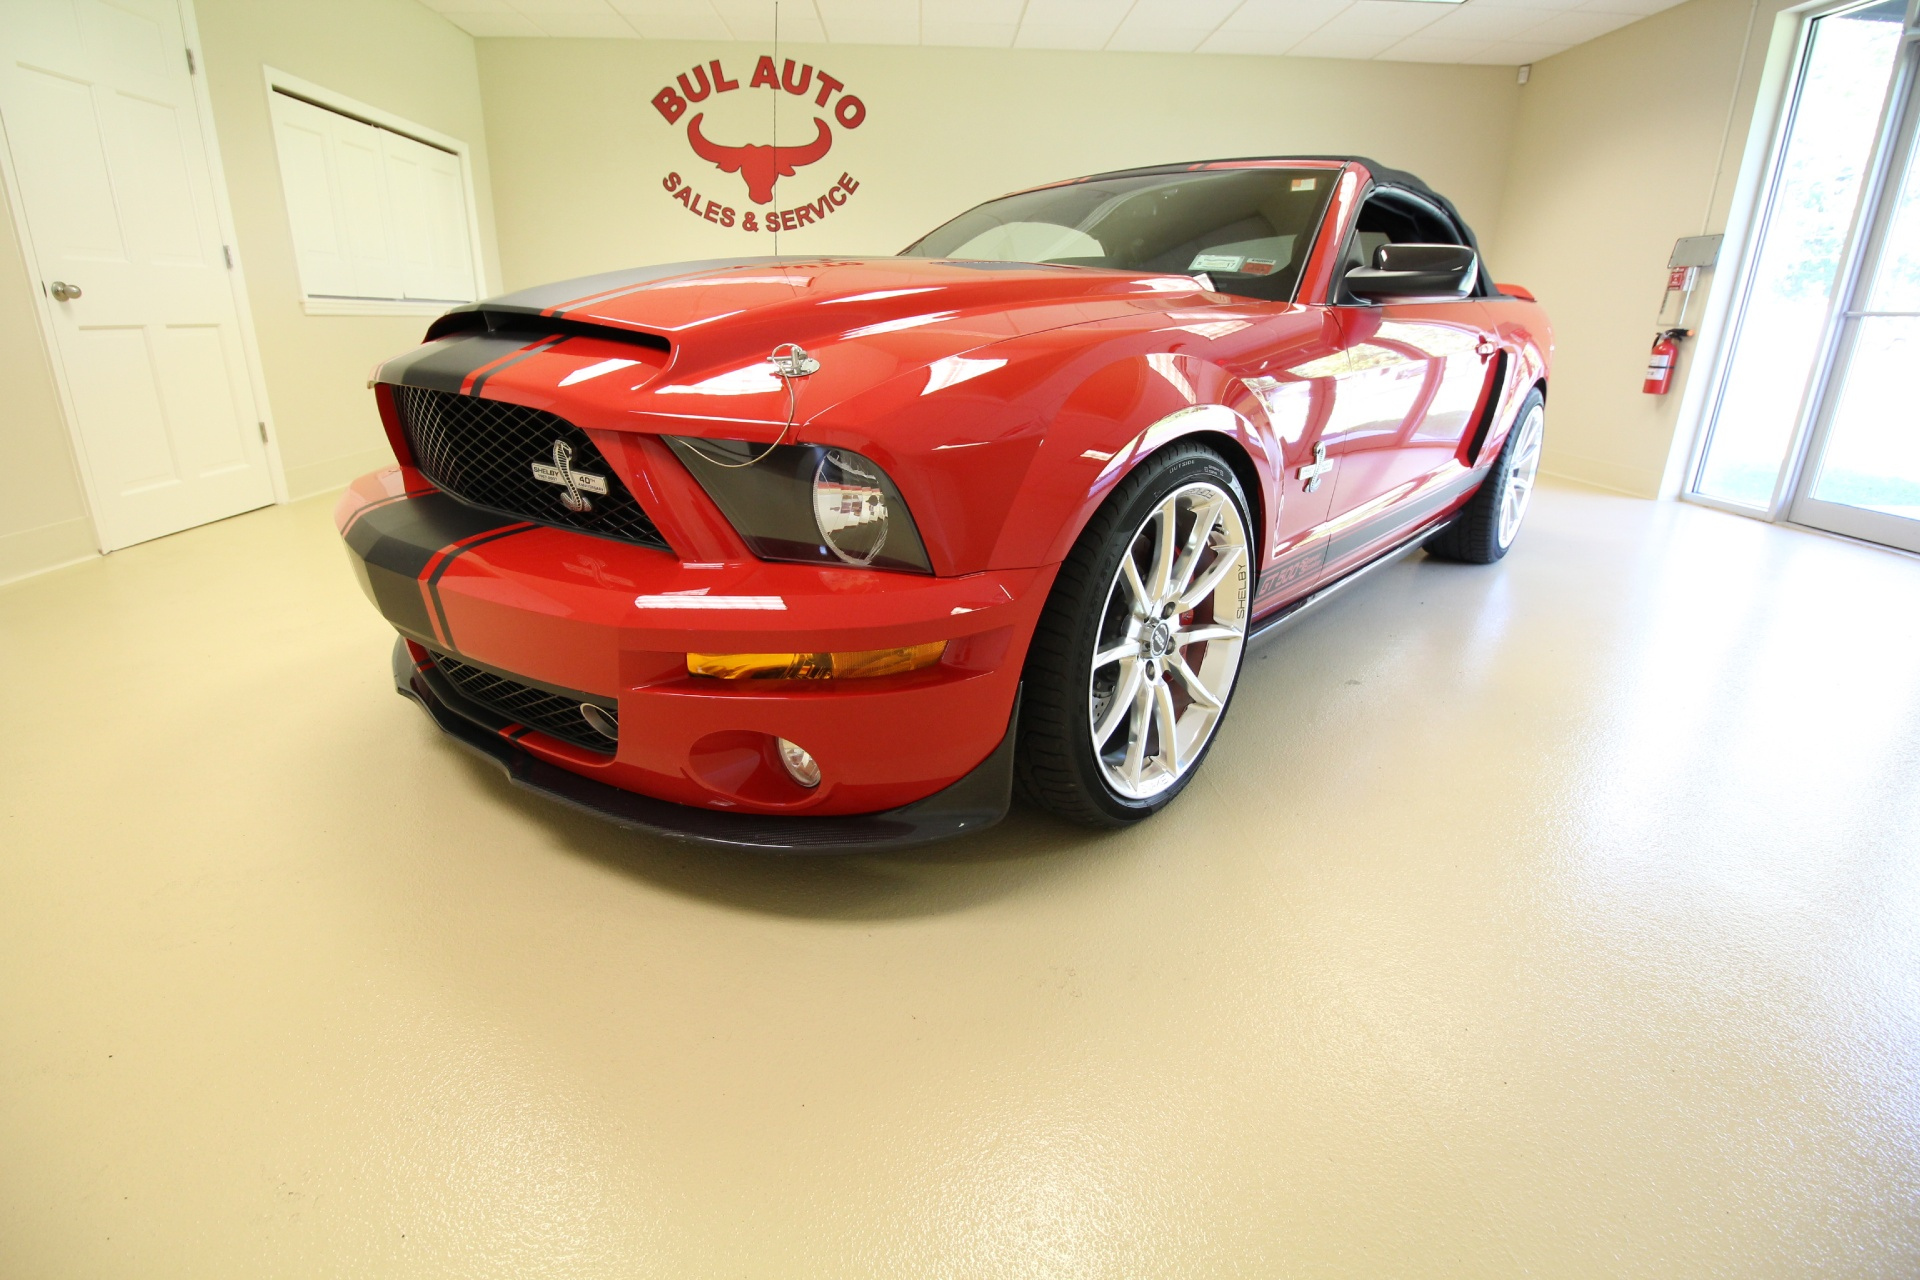 Used 2007 Ford Shelby GT500 Convertible   Albany, NY